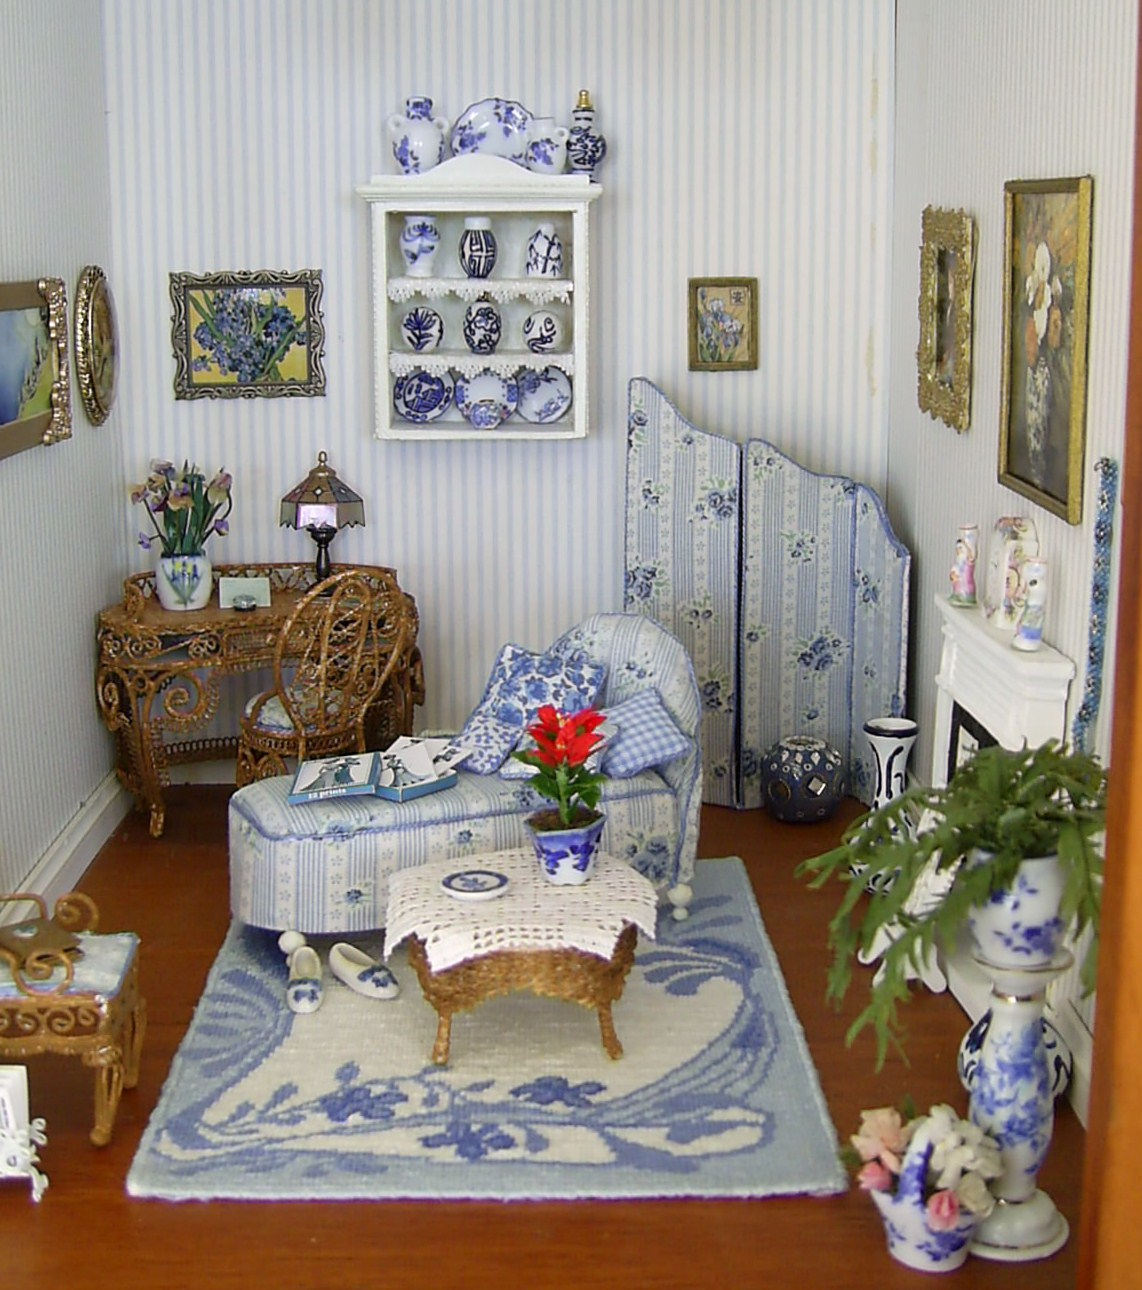 Dollhouse Miniature Roombox Sitting Room: Dolls Houses And Minis: Edwardian Dolls House: The Morning